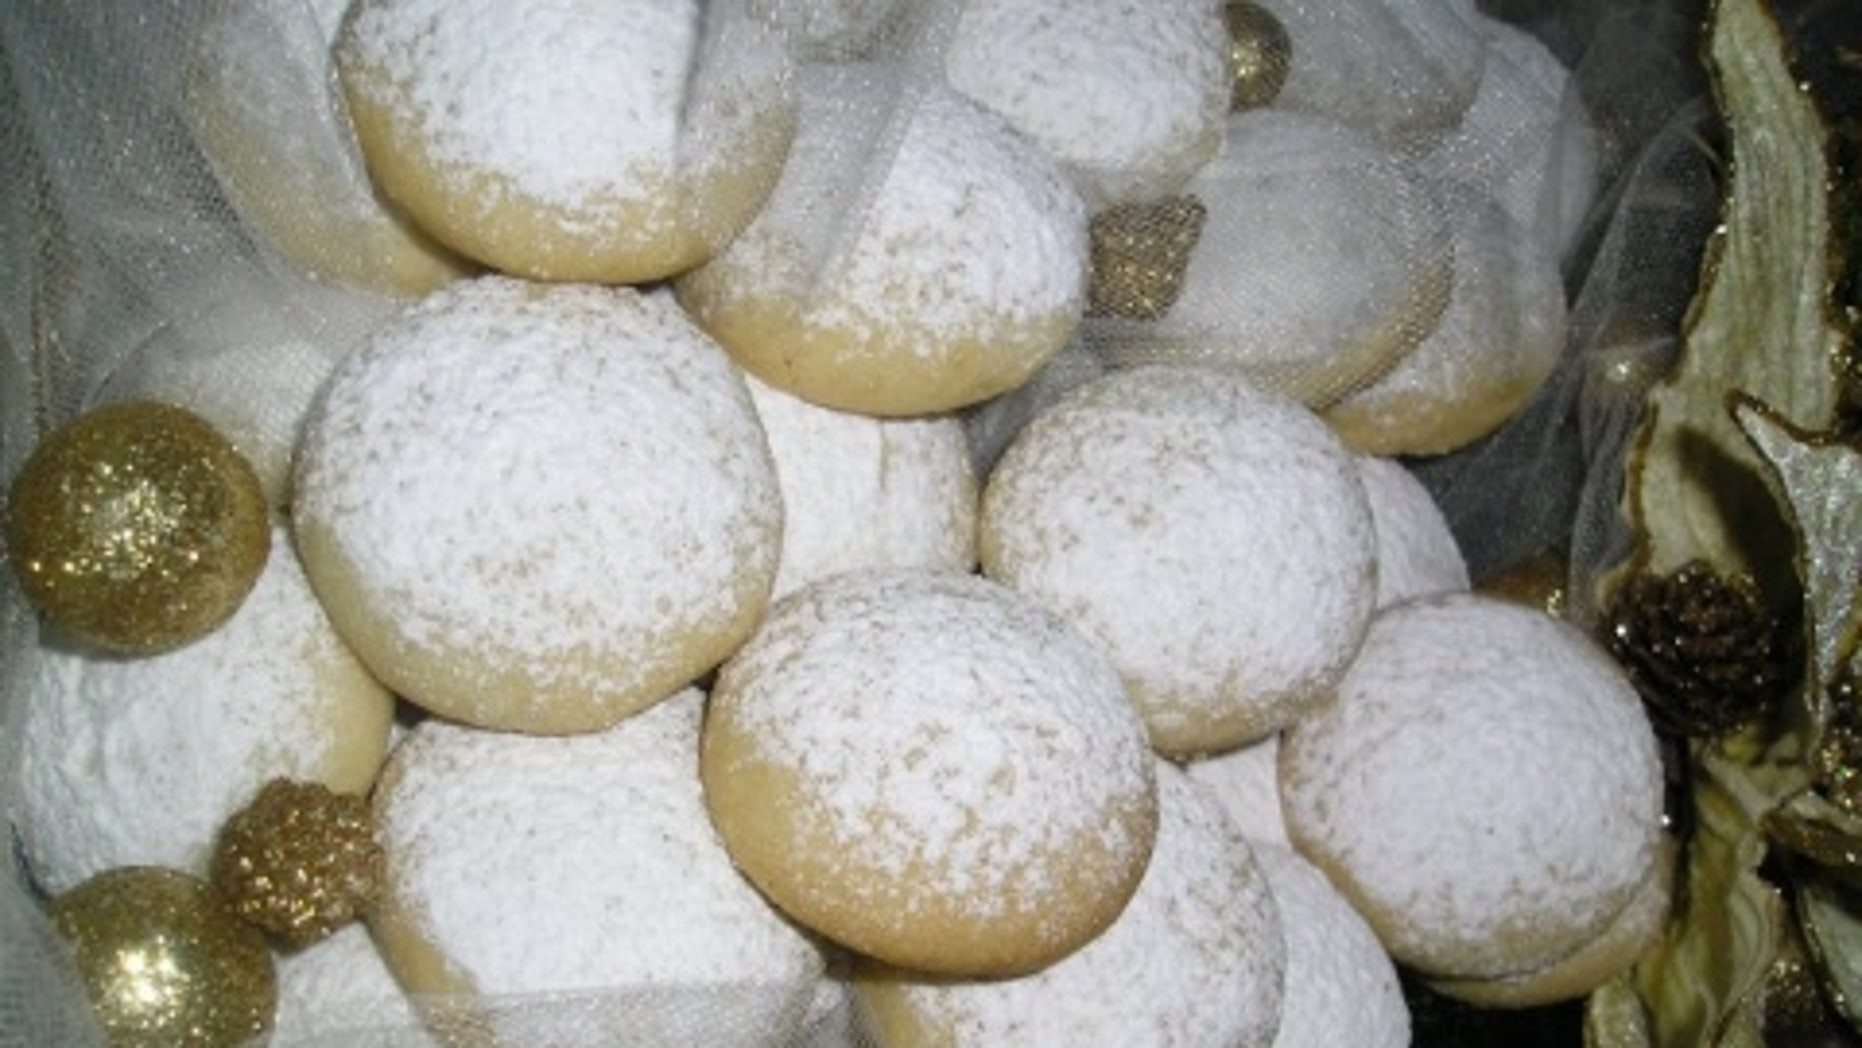 A Bulgarian baker was arrested after serving cocaine-sprinkled cookies to guests at a Greek funeral, news website Novinite reported Wednesday.